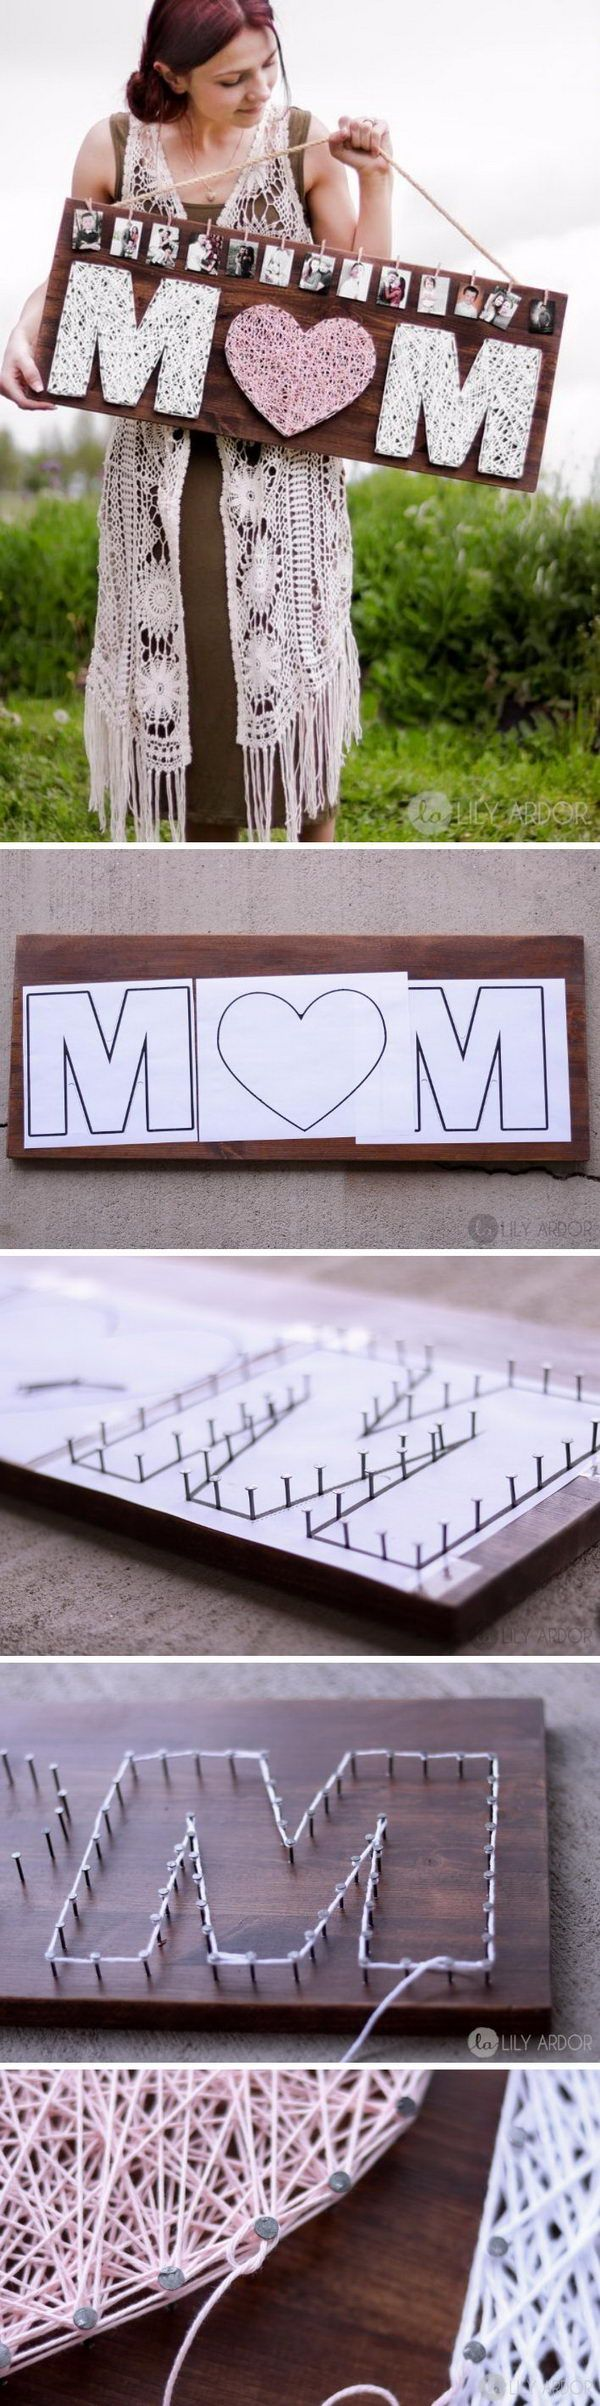 DIY: String Art Mother's Day/Christmas/Birthday Gift. SO cute! I love this.